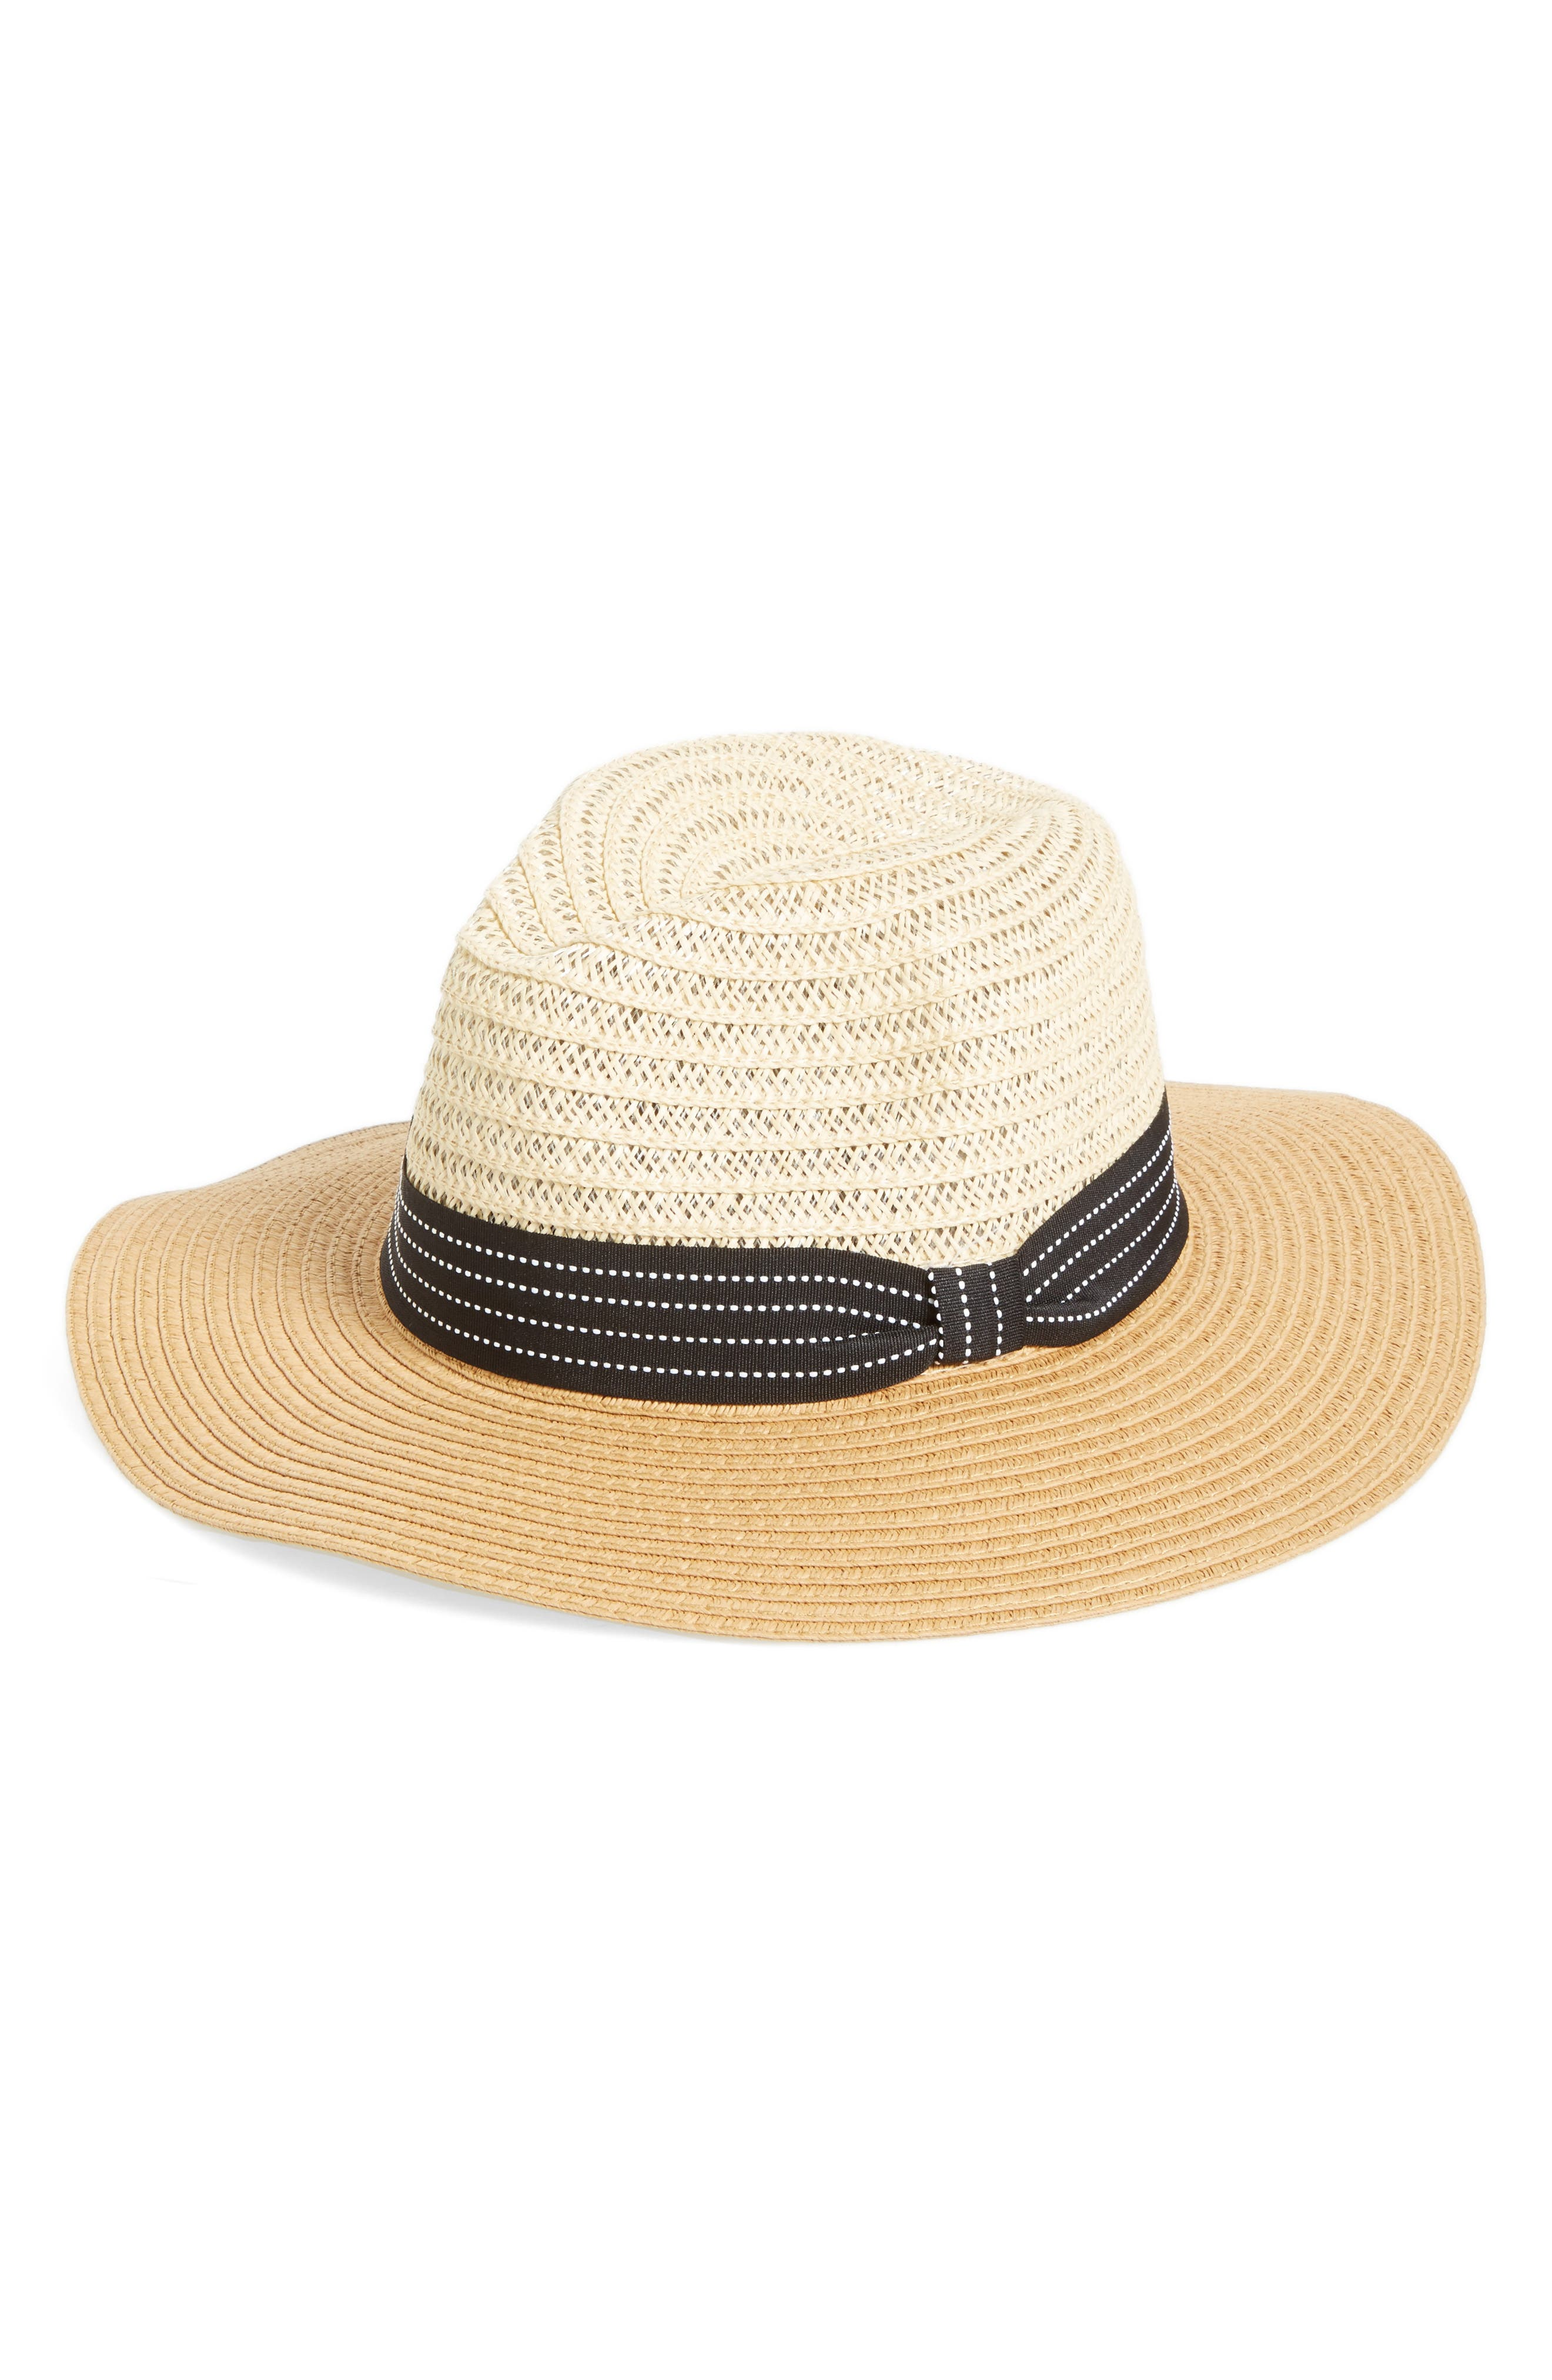 Main Image - BP. Two Tone Straw Panama Hat